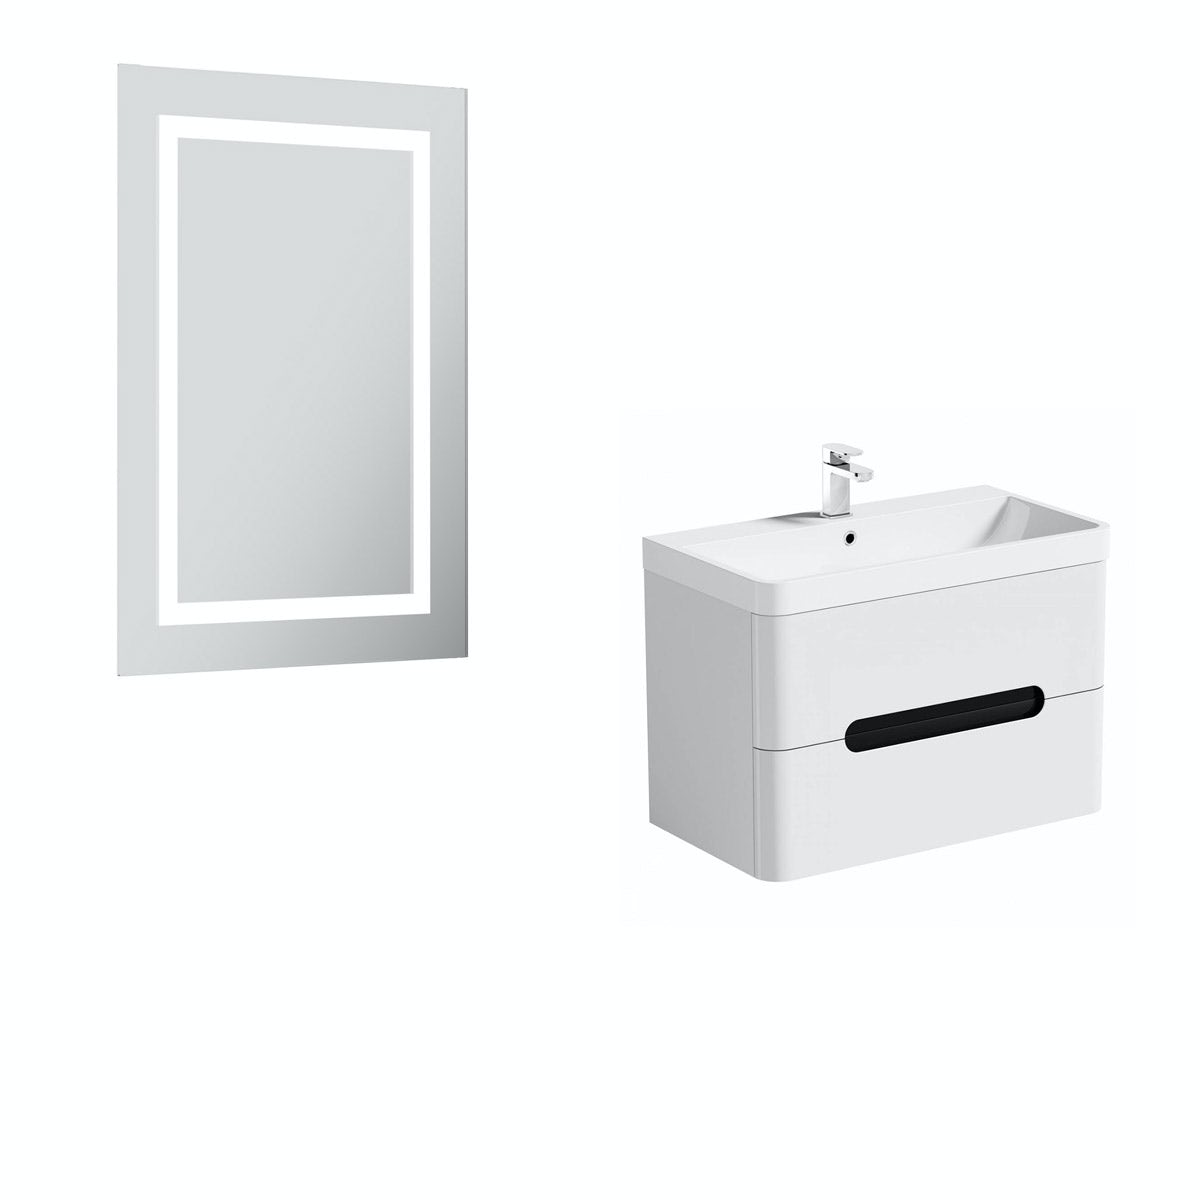 PMode Ellis select essen wall hung vanity unit 800mm and mirror offer